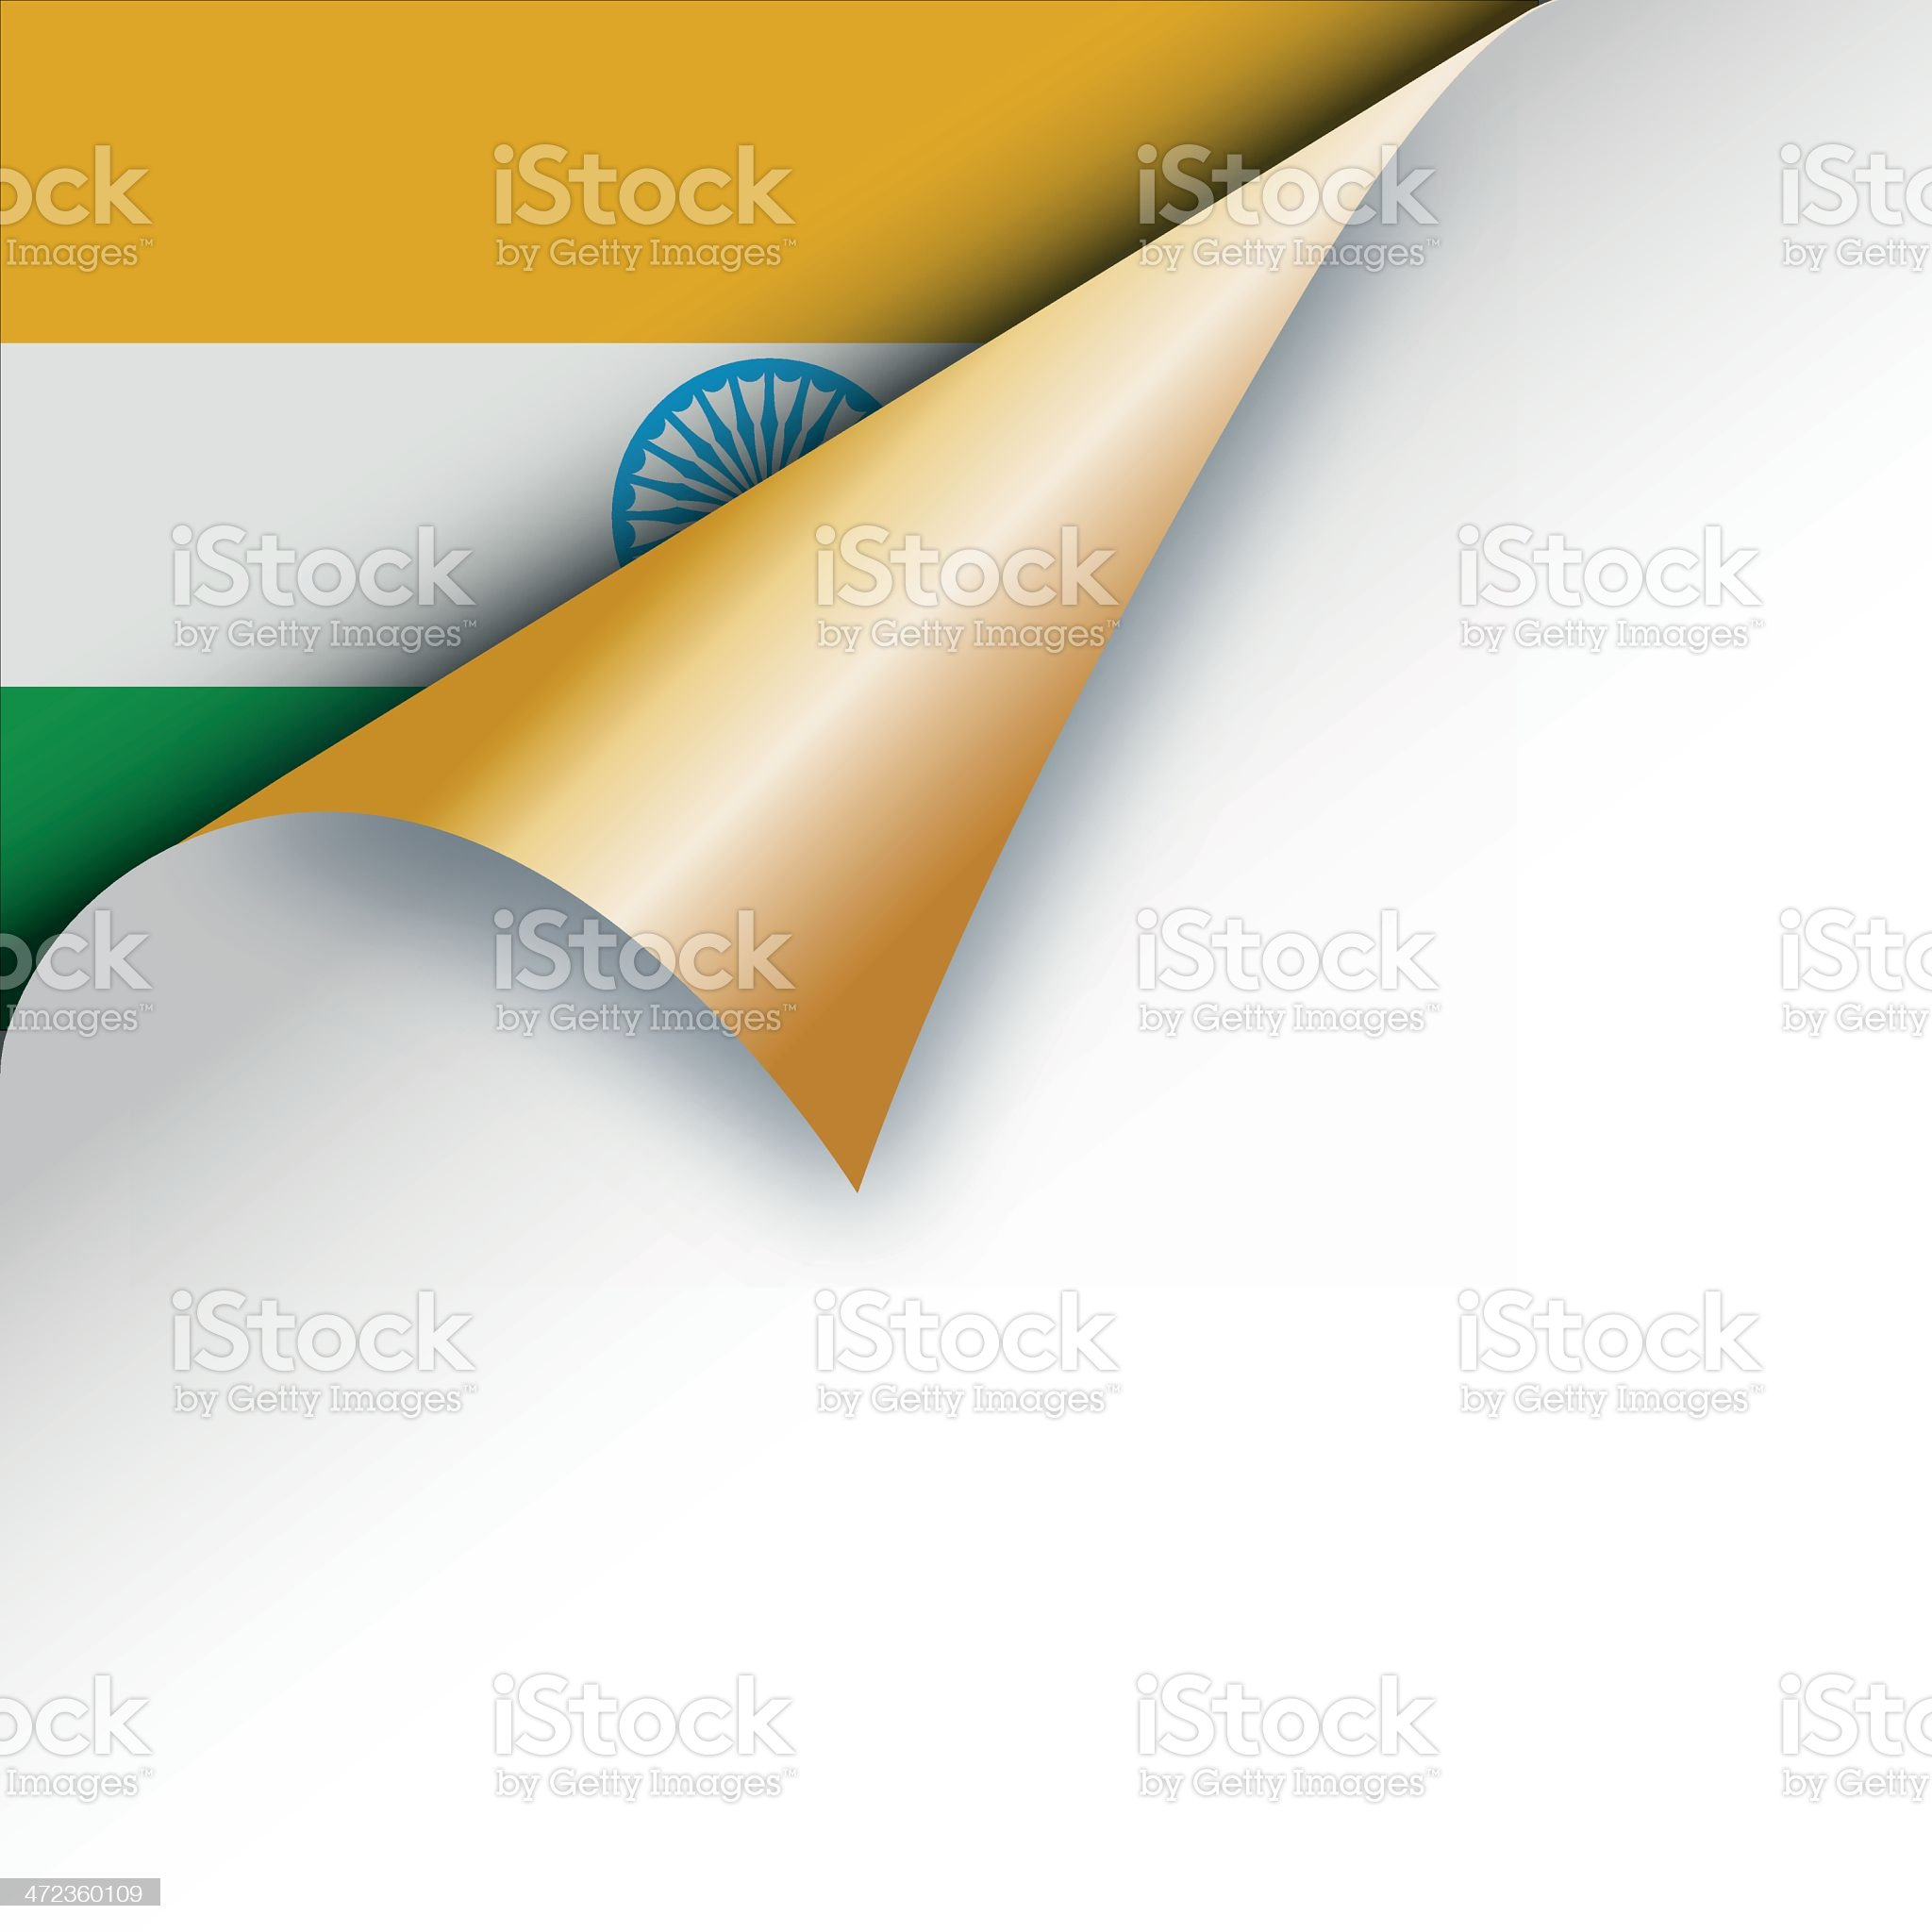 Corner page turn - Indian flag royalty-free stock vector art